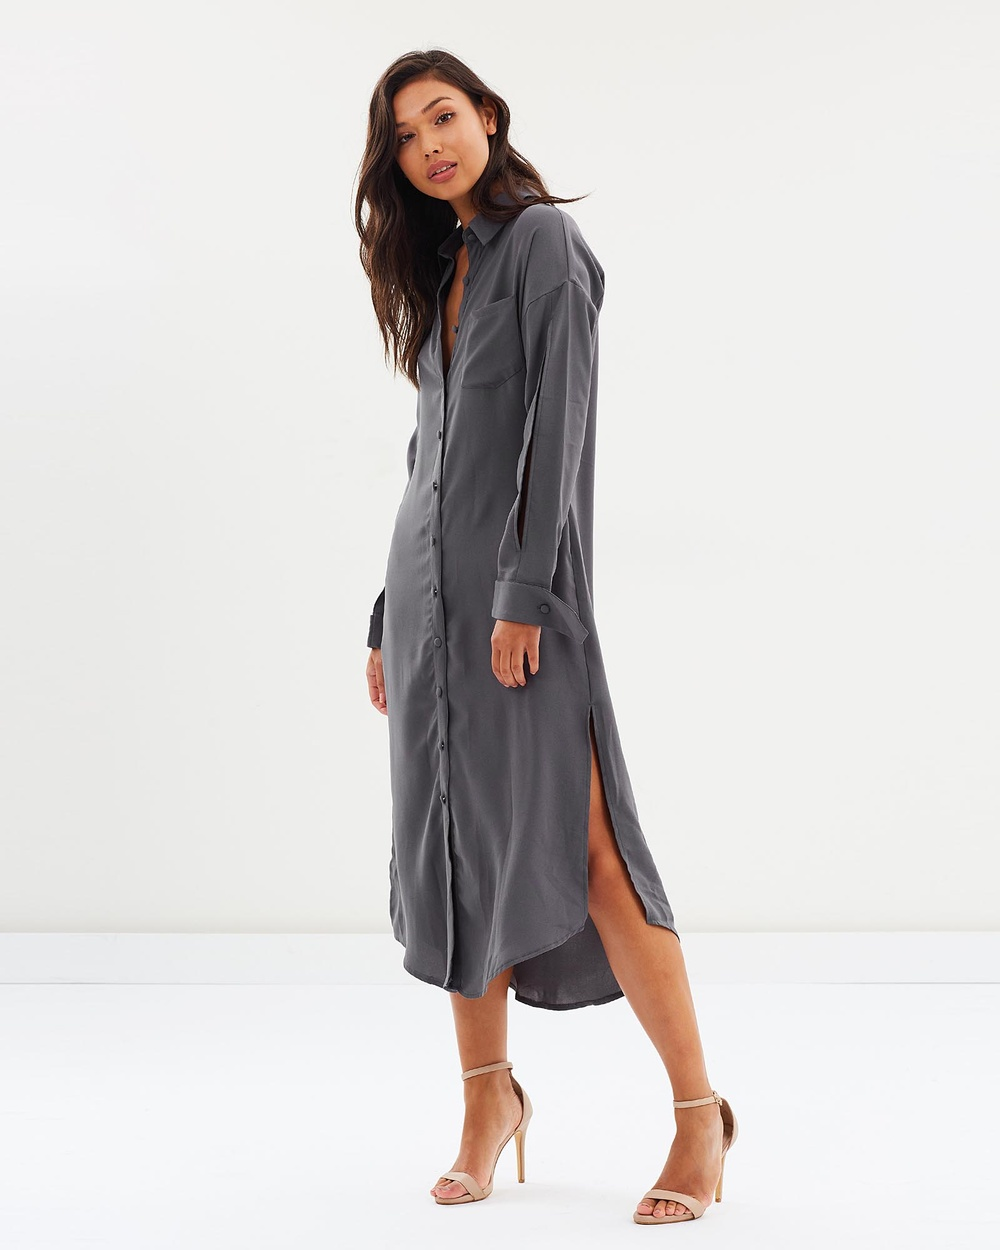 Photo of DELPHINE DELPHINE Palladium Shirt Dress Dresses Charcoal Palladium Shirt Dress - The beautifully tailored Palladium Shirt Dress from Australian label DELPHINE is the perfect desk-to-dinner dress. This light charcoal dress is cut from a luxurious matte satin, it can be styled in a paired back way with simple flats and accessories for the office, then dressed-up with heels and a swipe of red lipstick when the sun goes down. Our model is wearing a size small dr